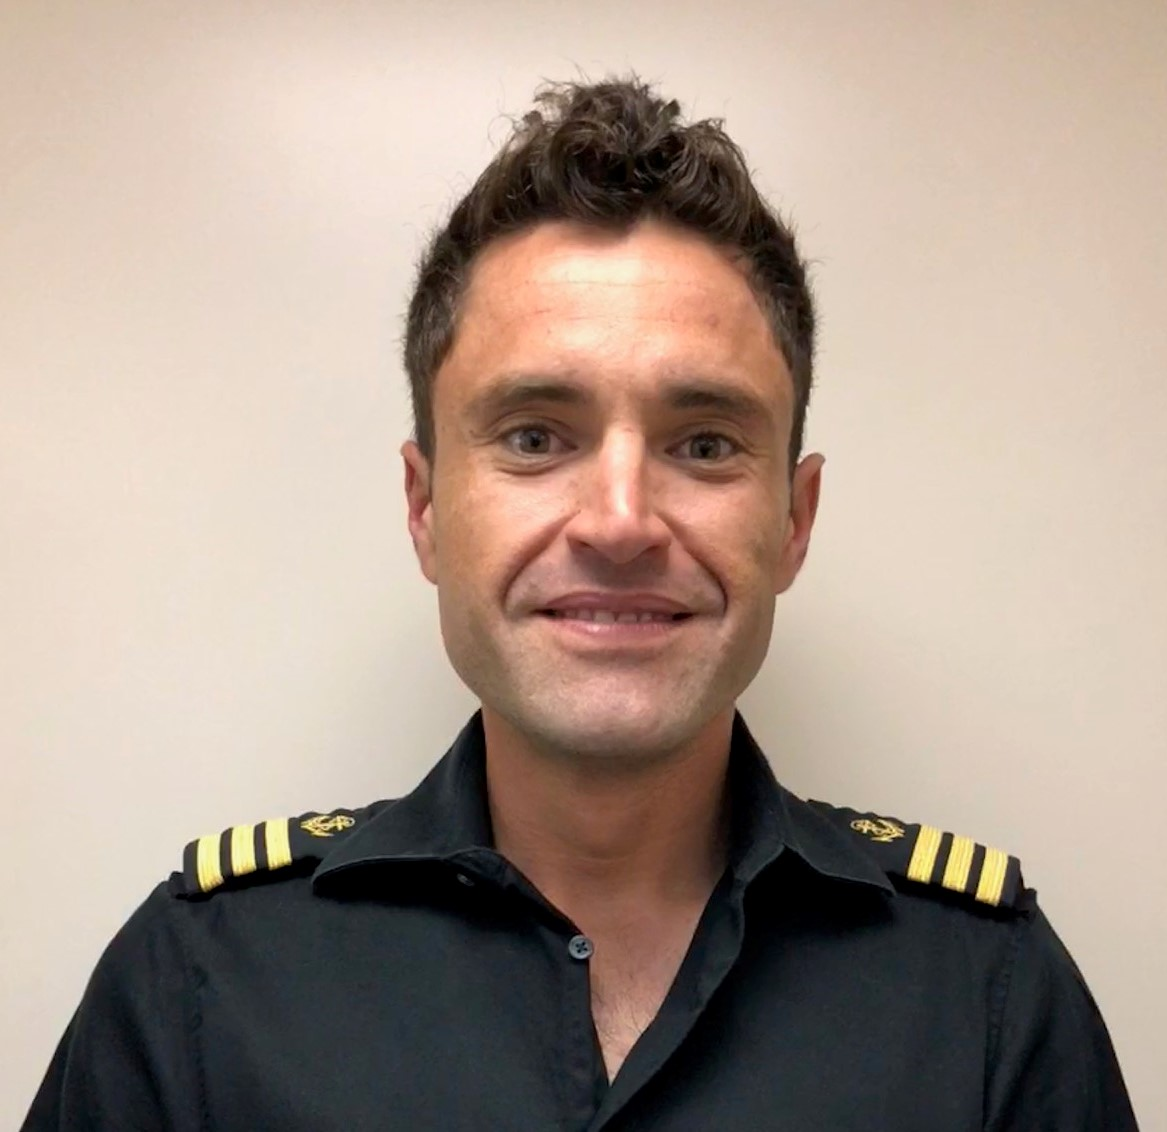 CHIEF OFFICER MATTHEW RADMILLI